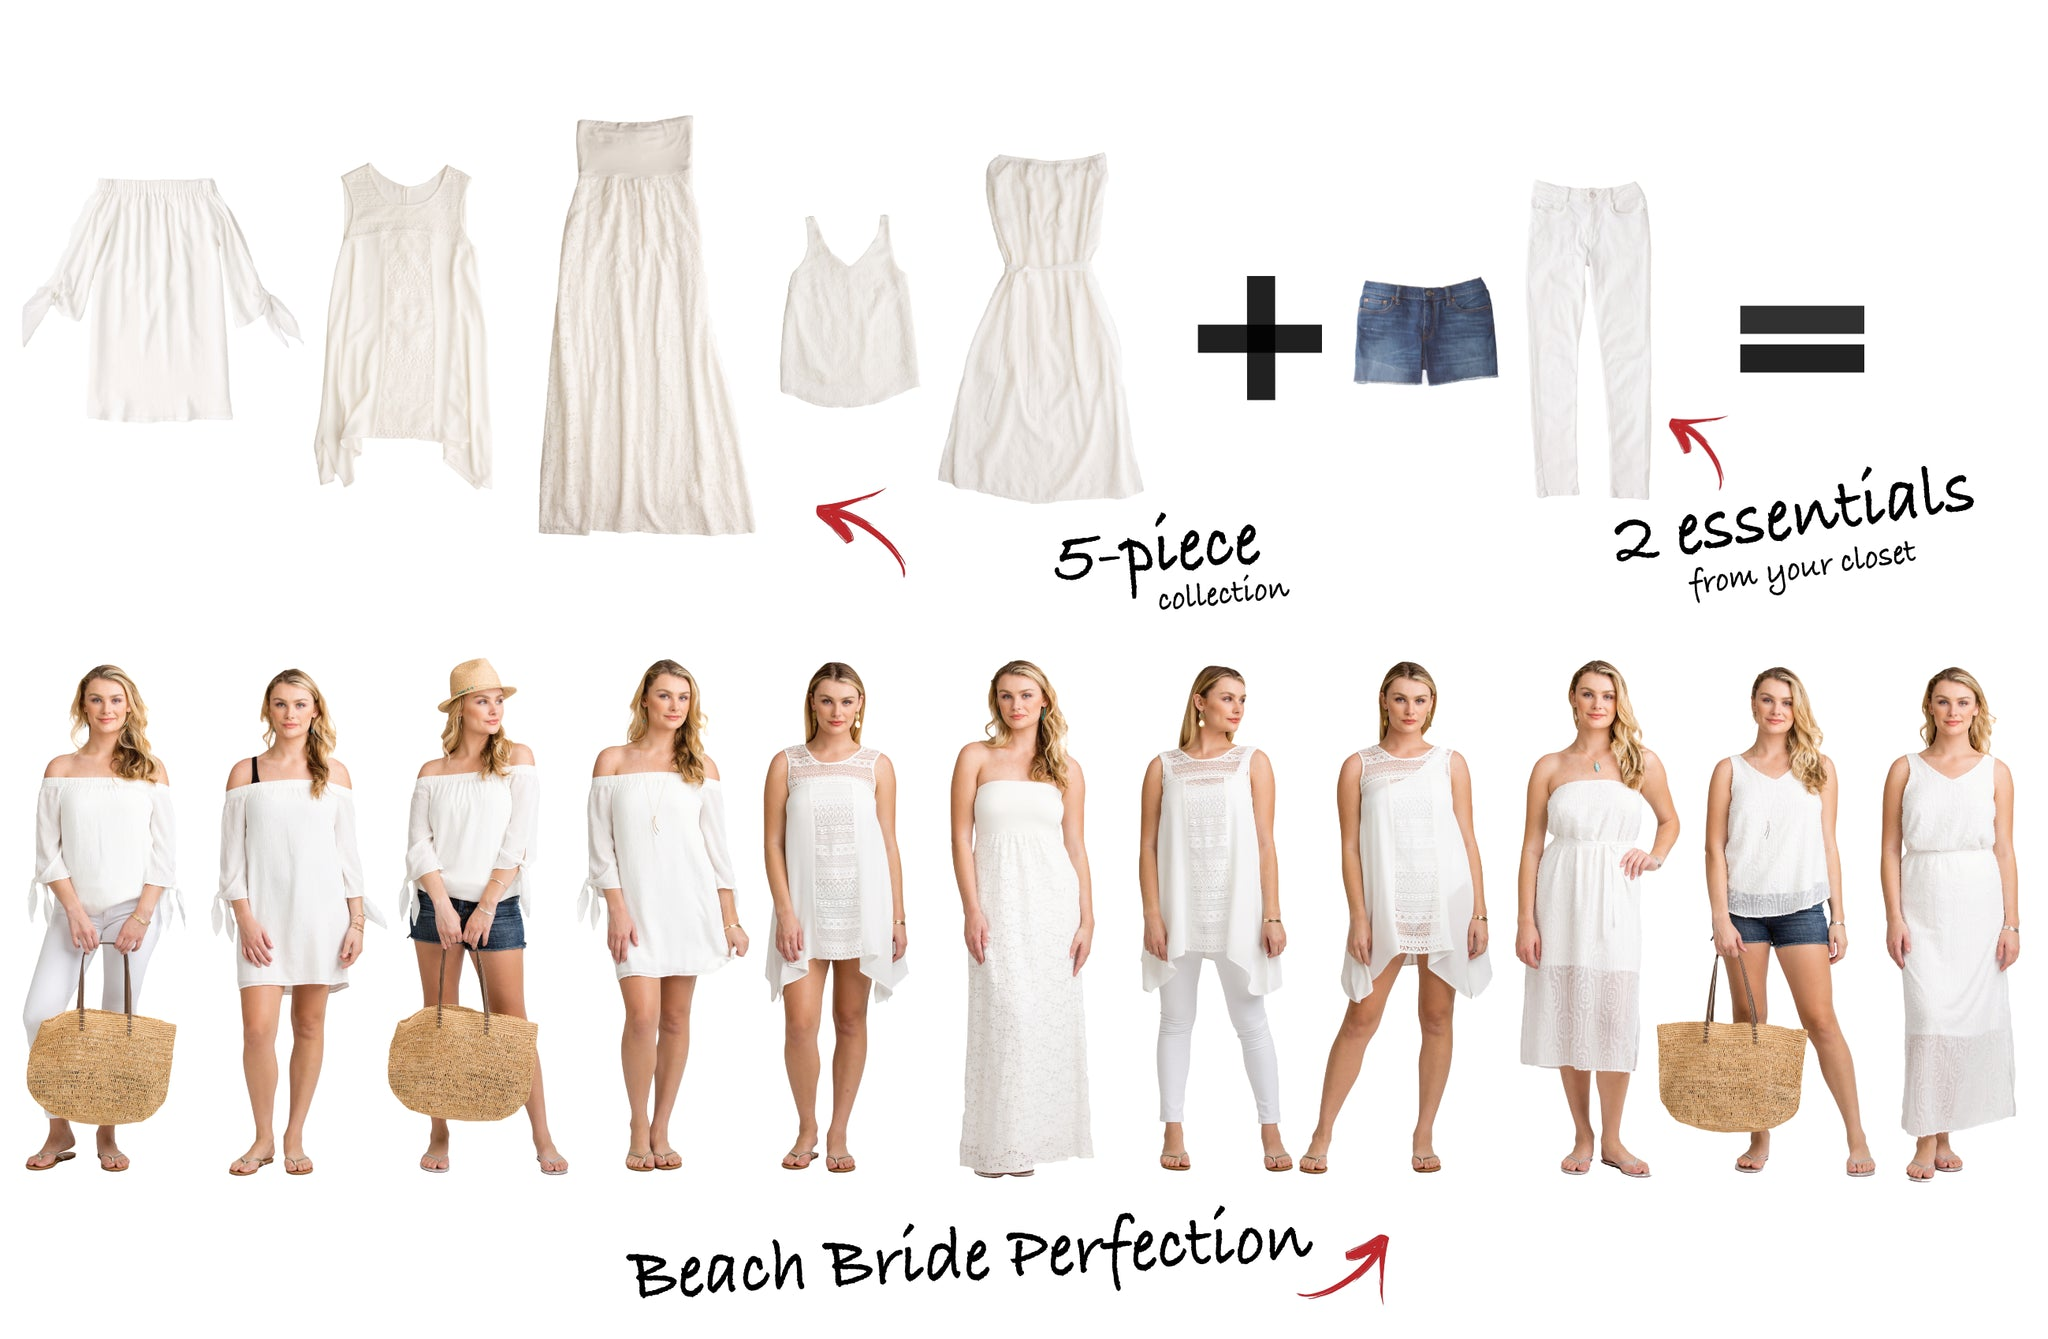 Beach Bride Collection equals bridal perfection